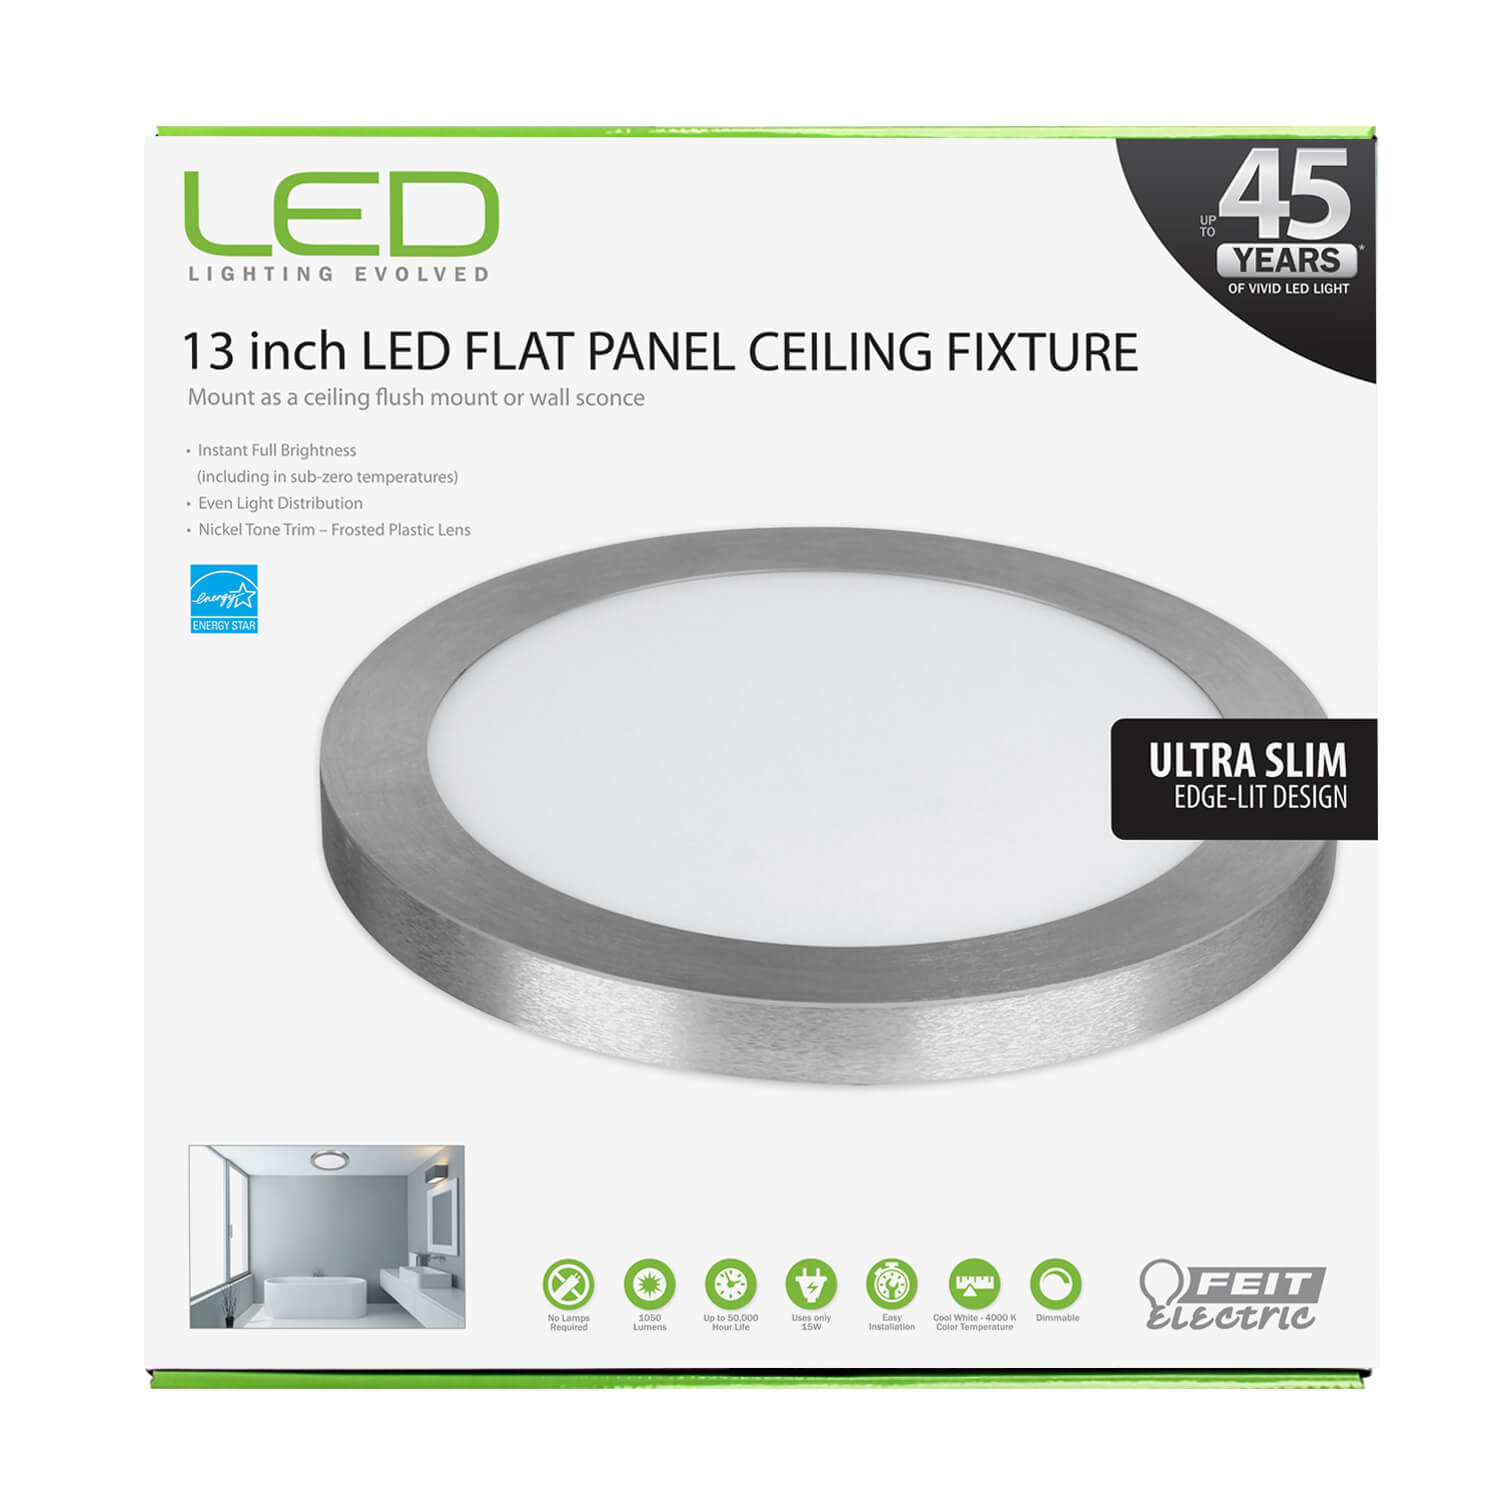 1050 Lumen 4000k 13 Inch Led Flat Panel Ceiling Fixture